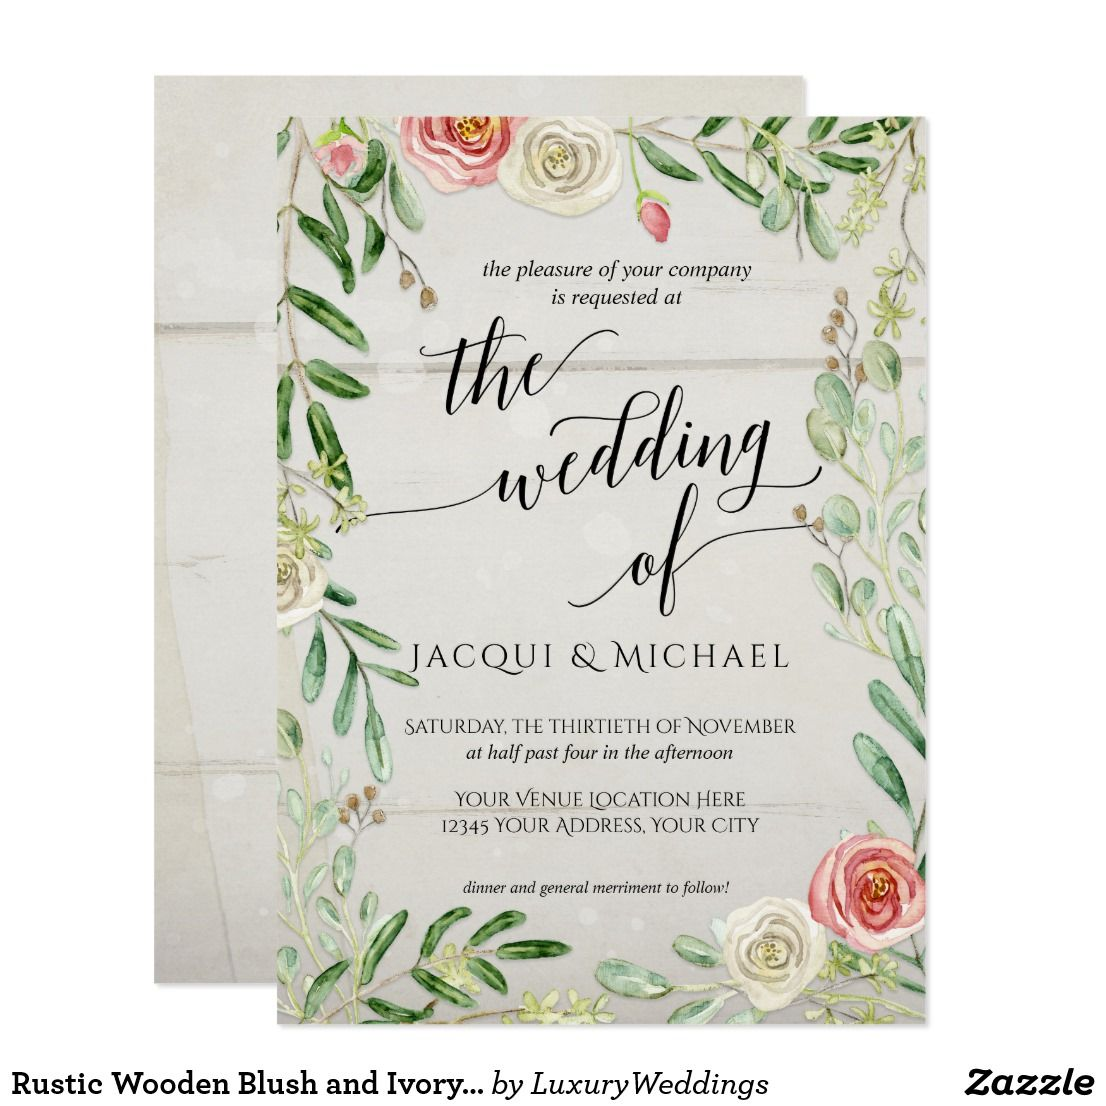 Rustic Wooden Blush And Ivory Roses Floral Wedding Invitation With A Theme: Rustic Wood Floral Wedding Invitations At Reisefeber.org